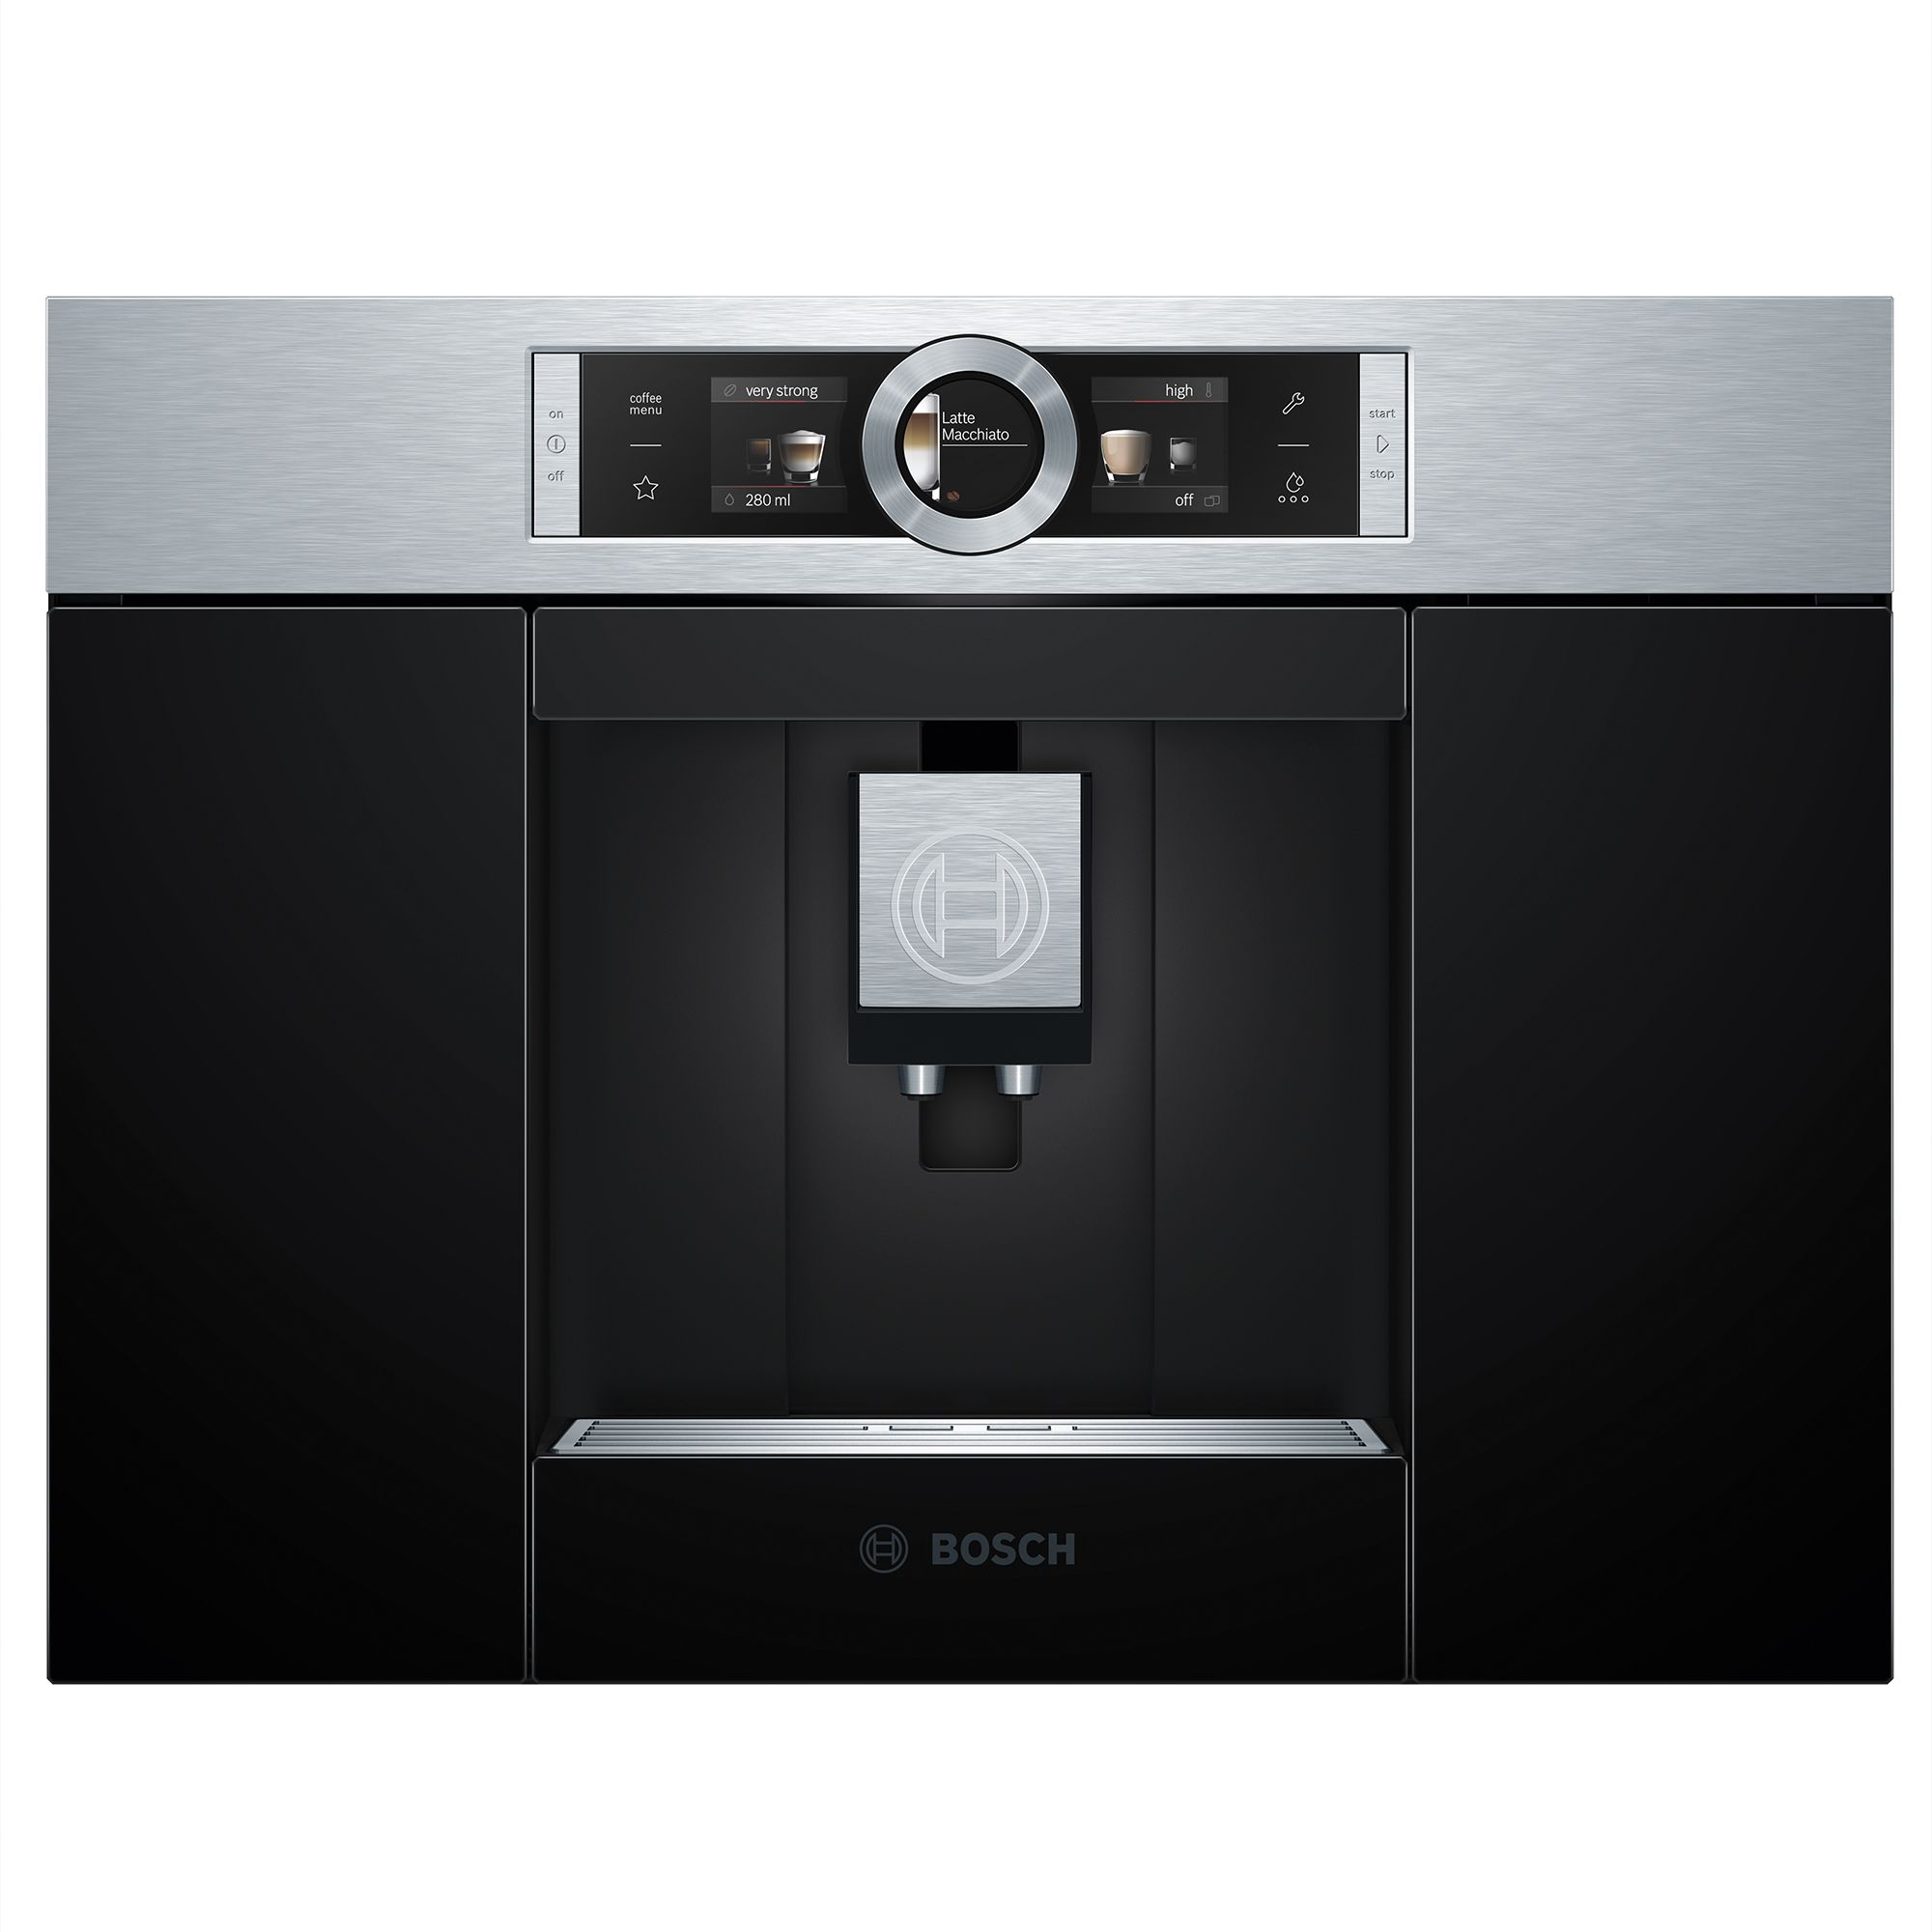 Bosch Coffee Maker Built In : Bosch Built In Coffee Machine, Black Departments DIY at B&Q